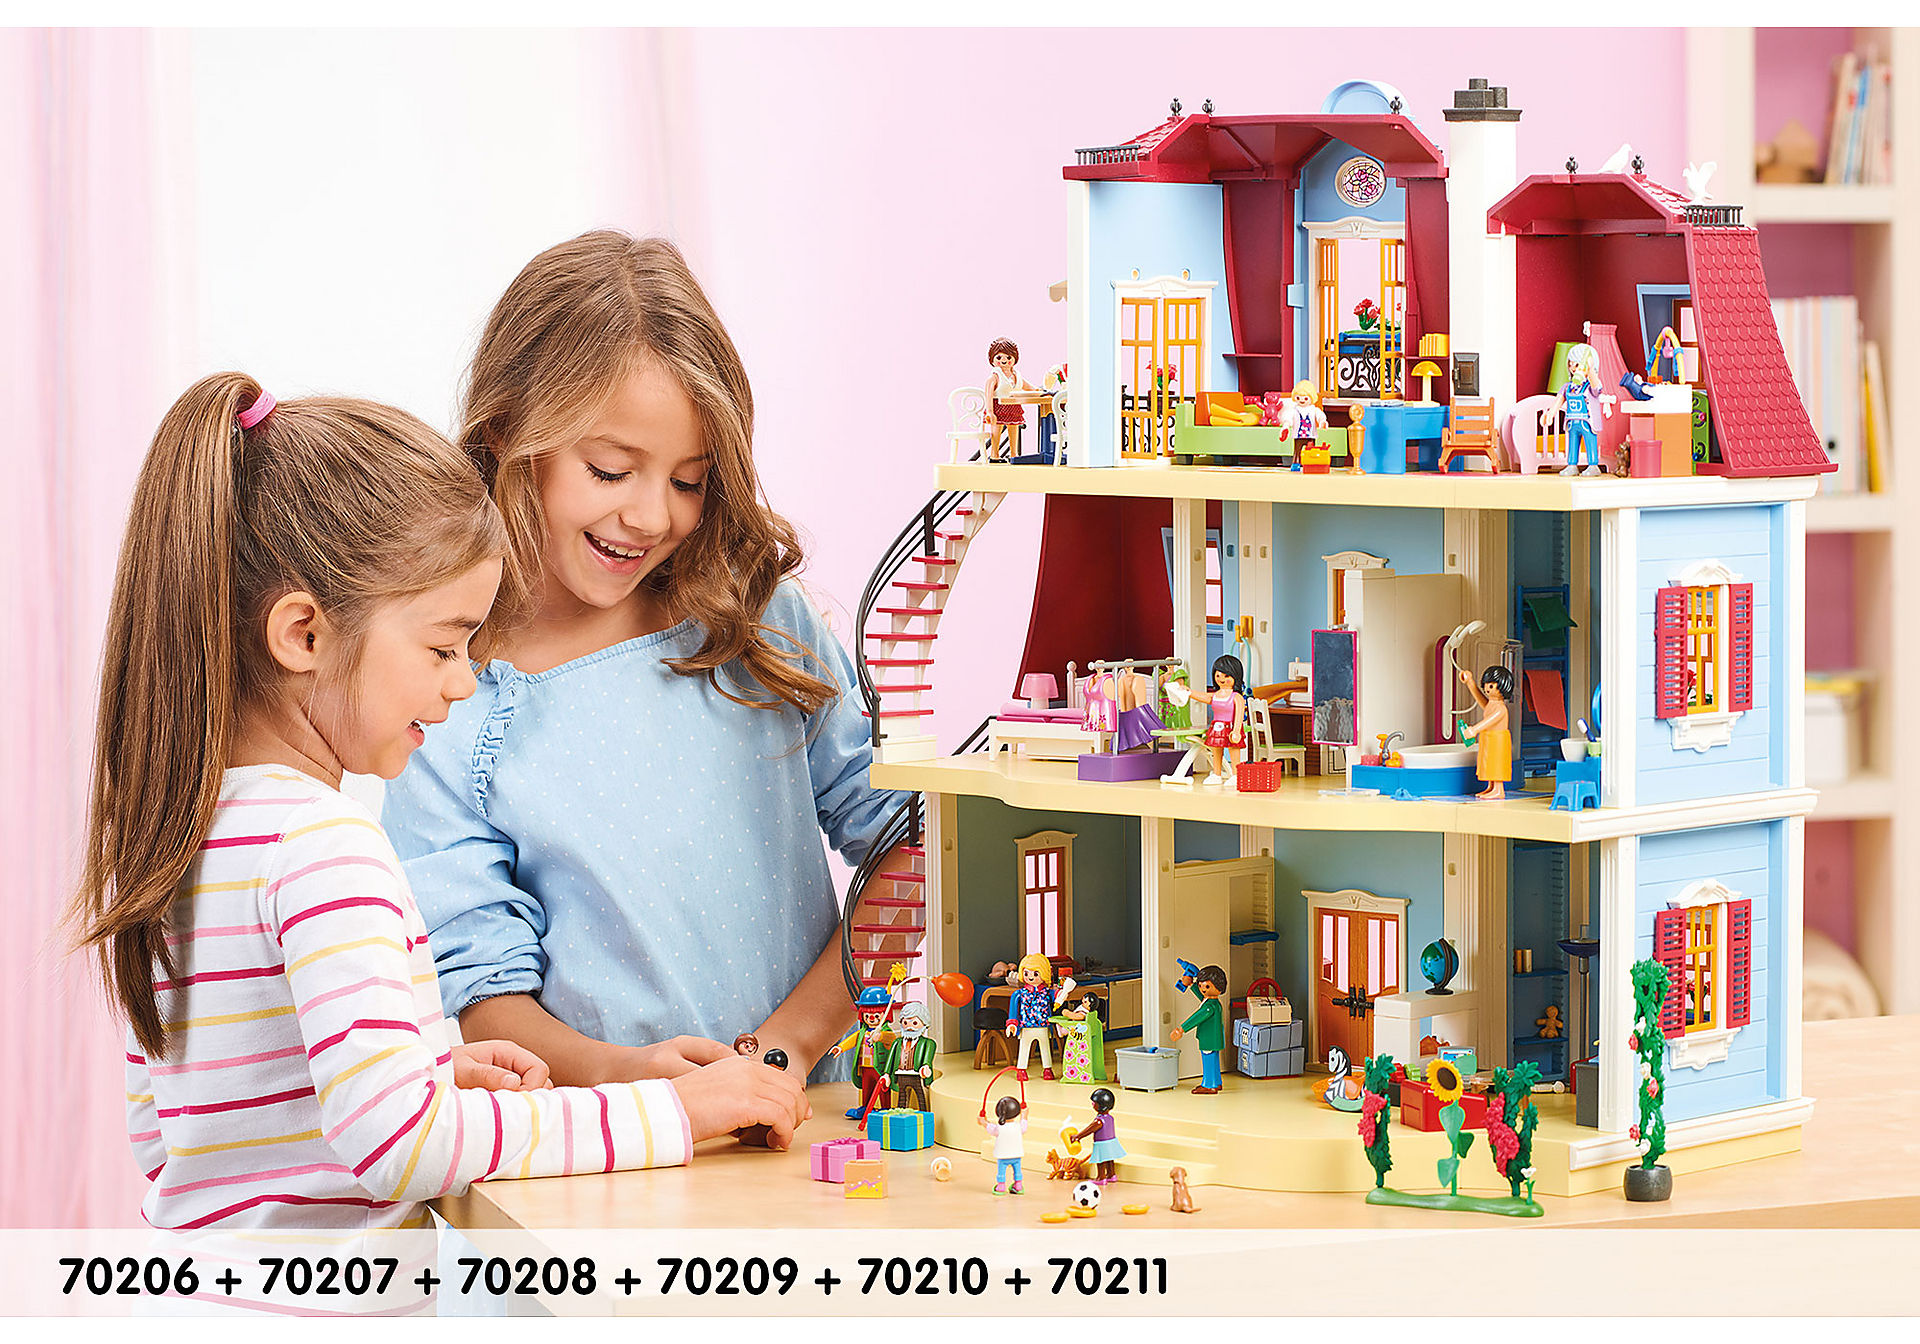 70205 Large Dollhouse zoom image8